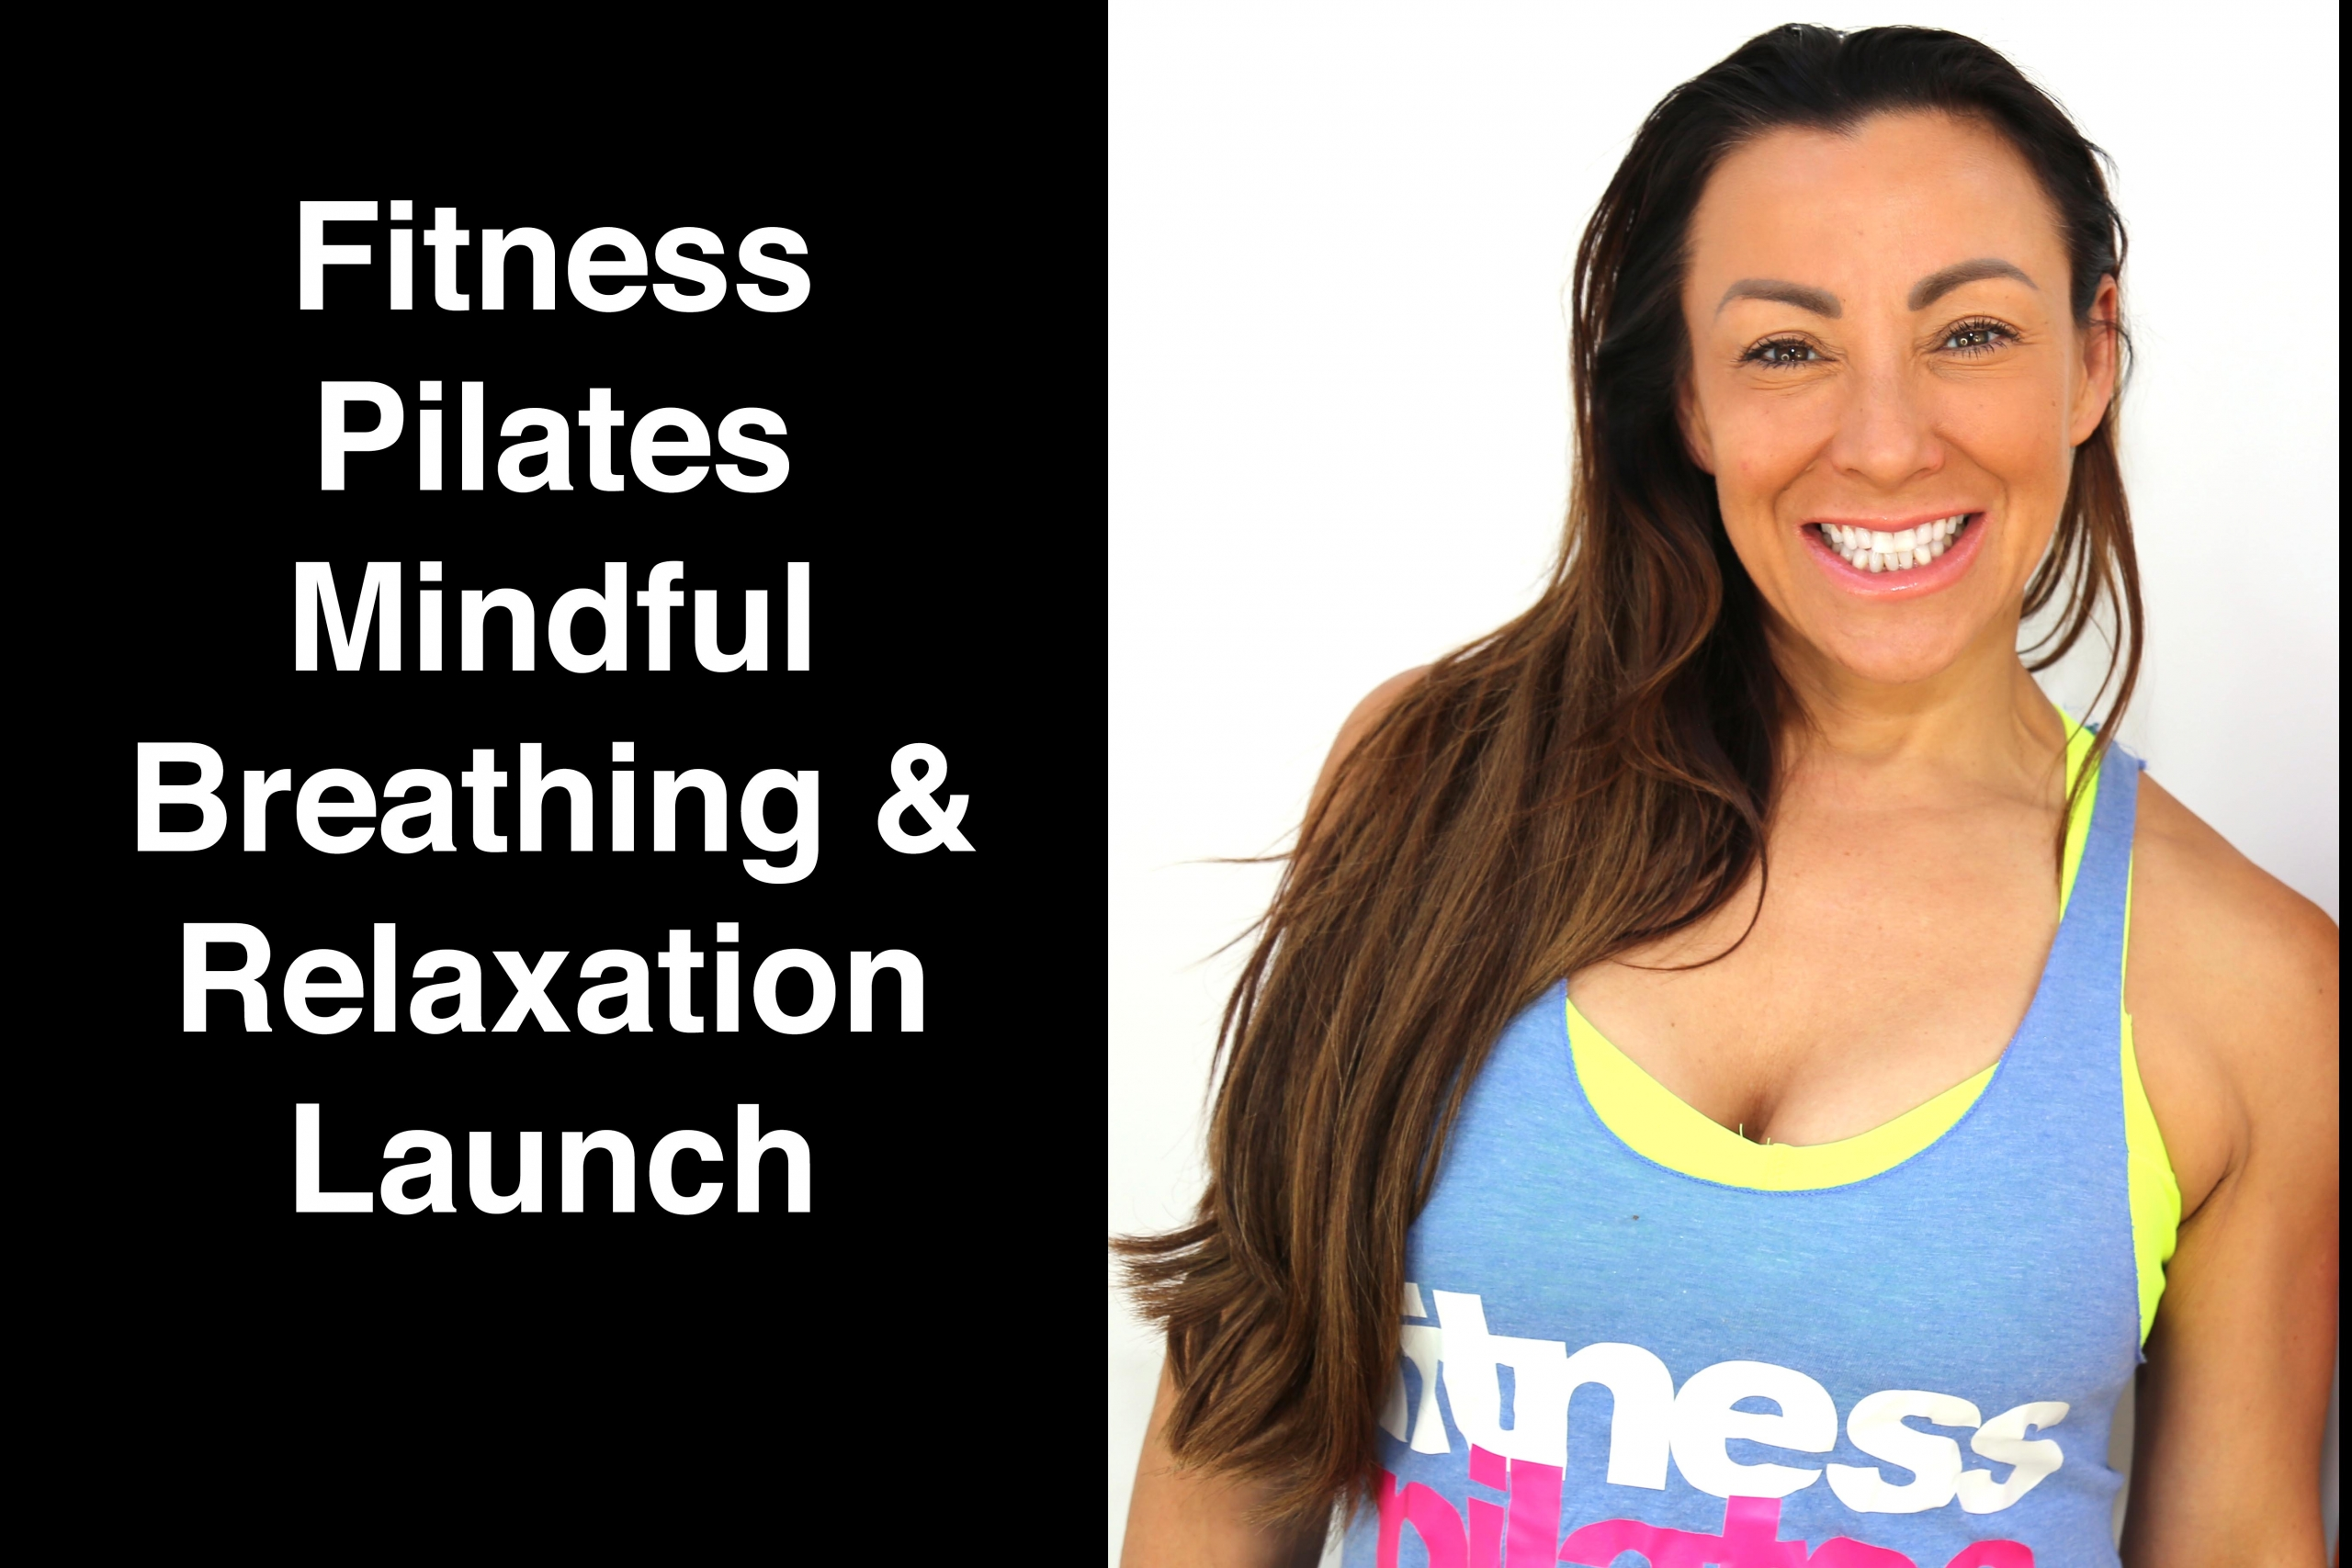 fitness pilates mindful breathing  relaxation course launches today  choreographytogo